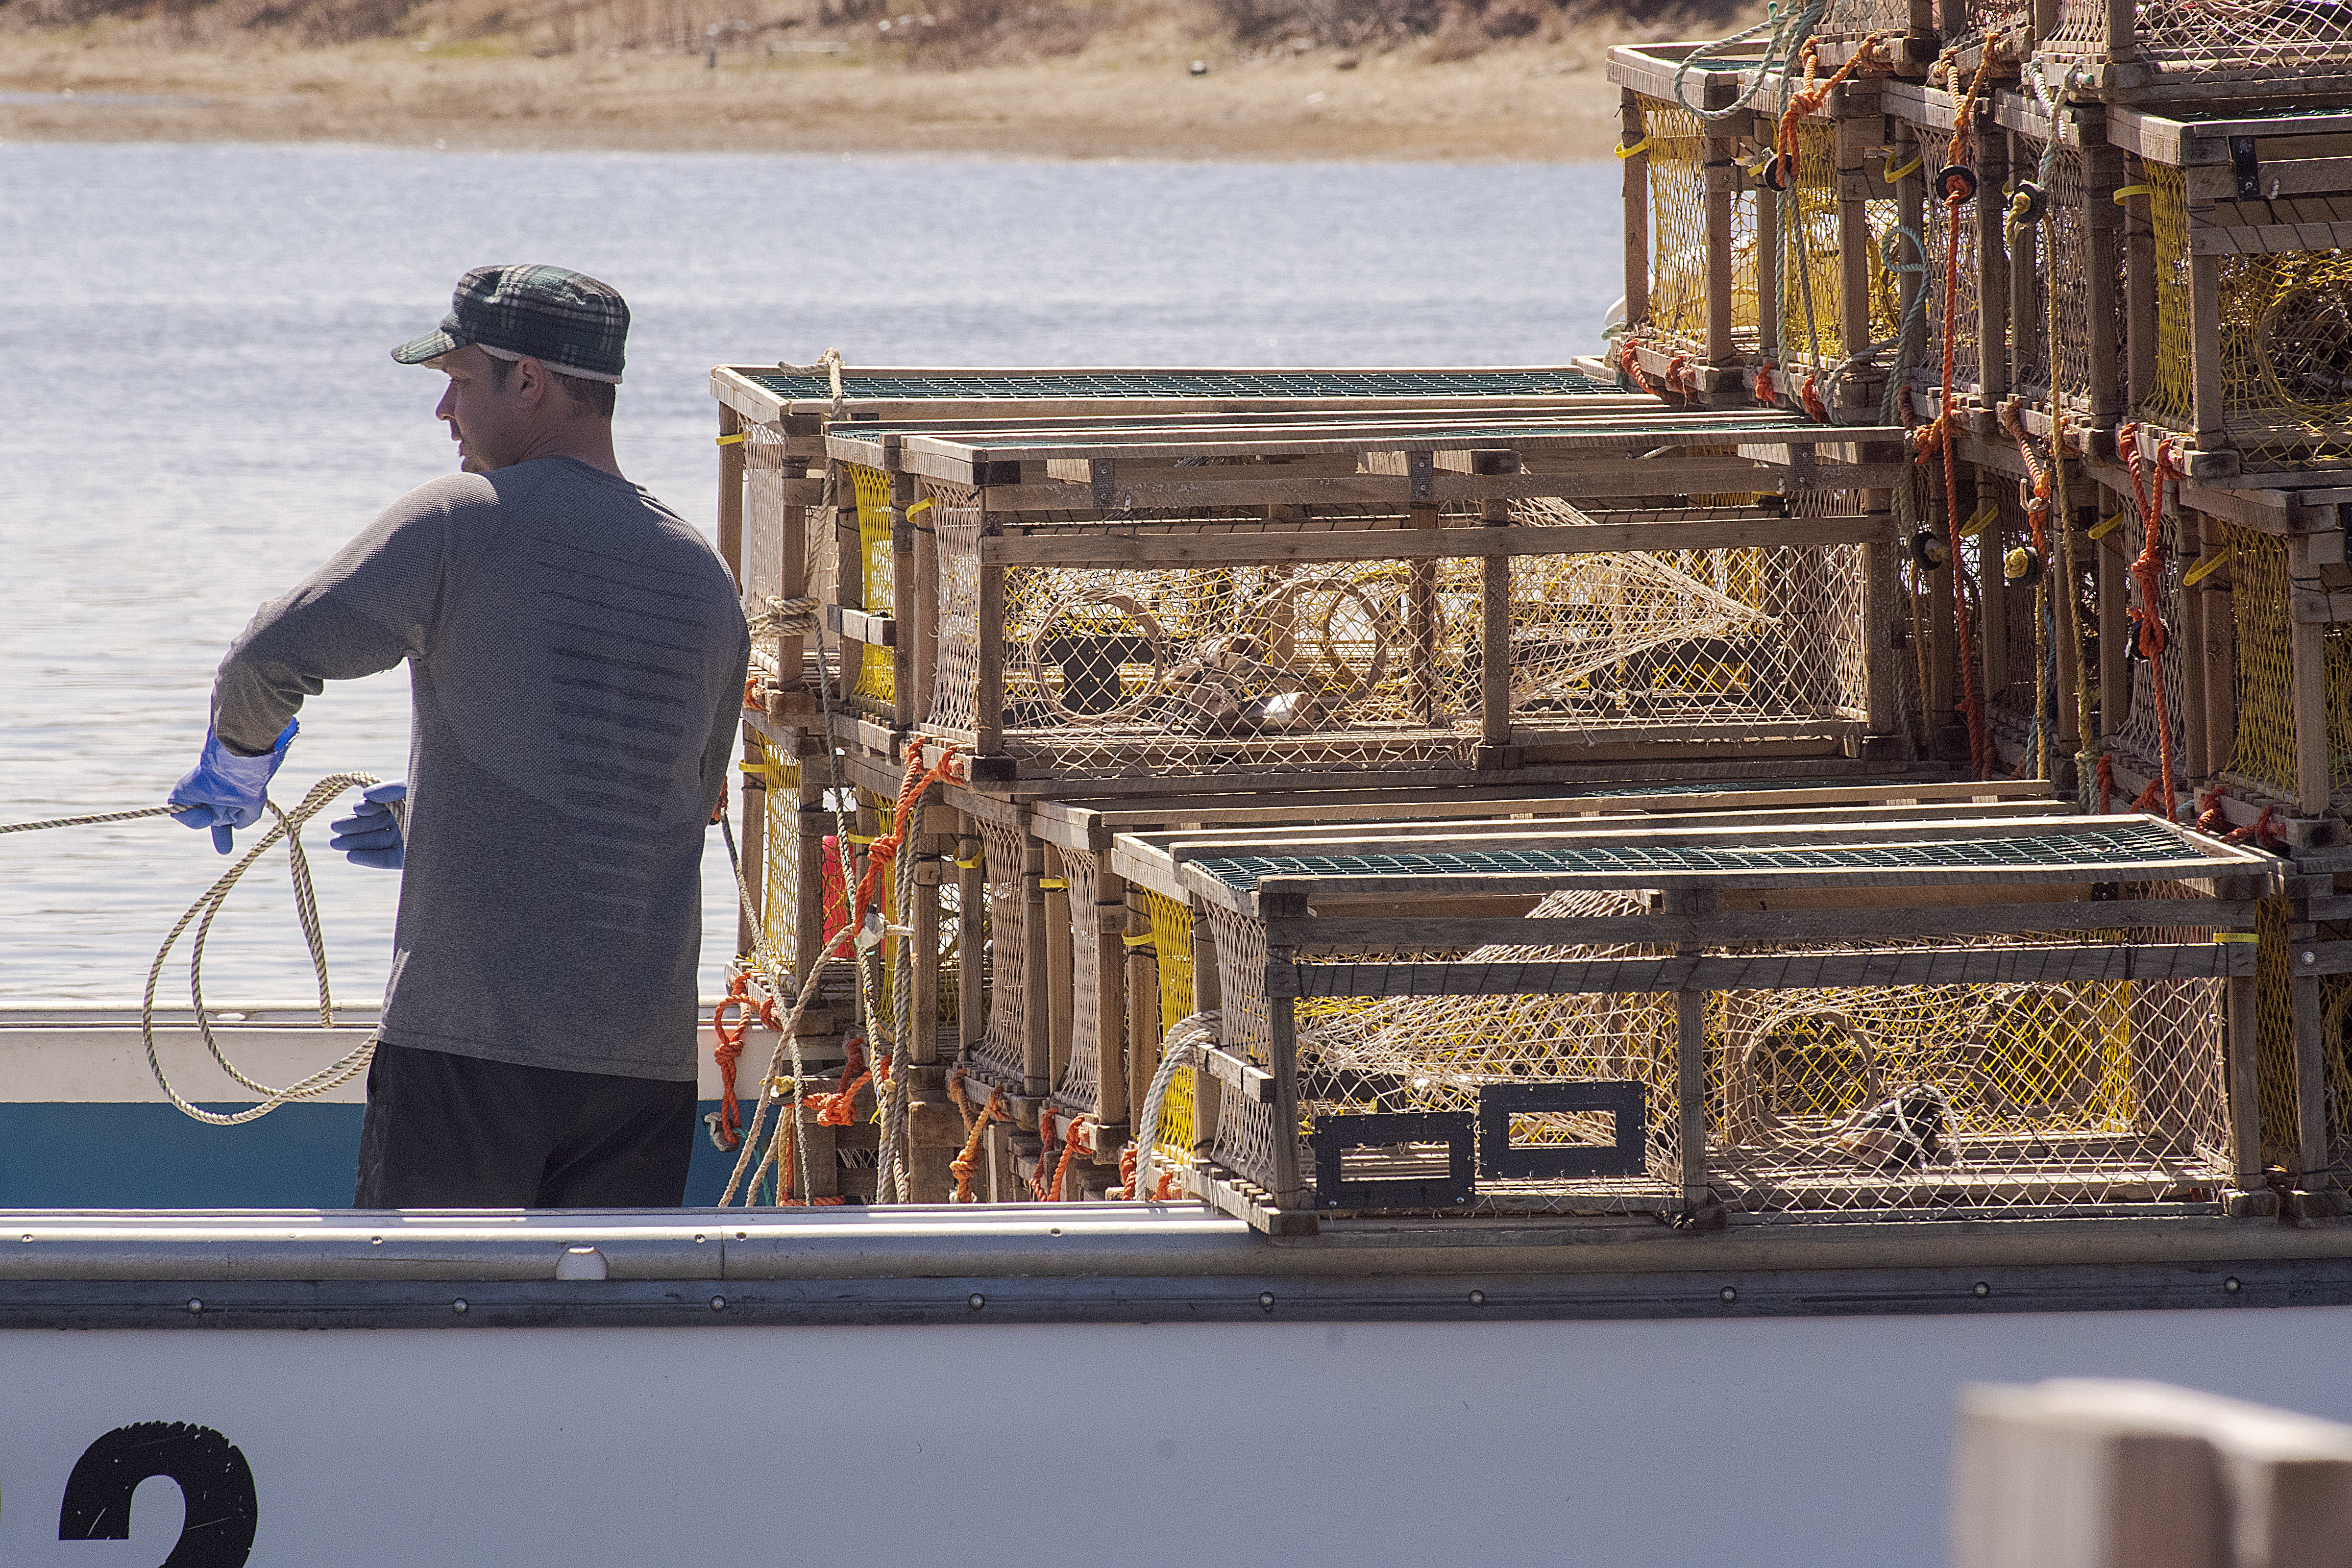 The ropes attached to the traps have to be tied in such a way it is difficult for anyone to get their feet tangled. Each trap weighs upwards of 60 pounds which could easily drag an unwary deckhand overboard. (Brian McInnis/CBC)